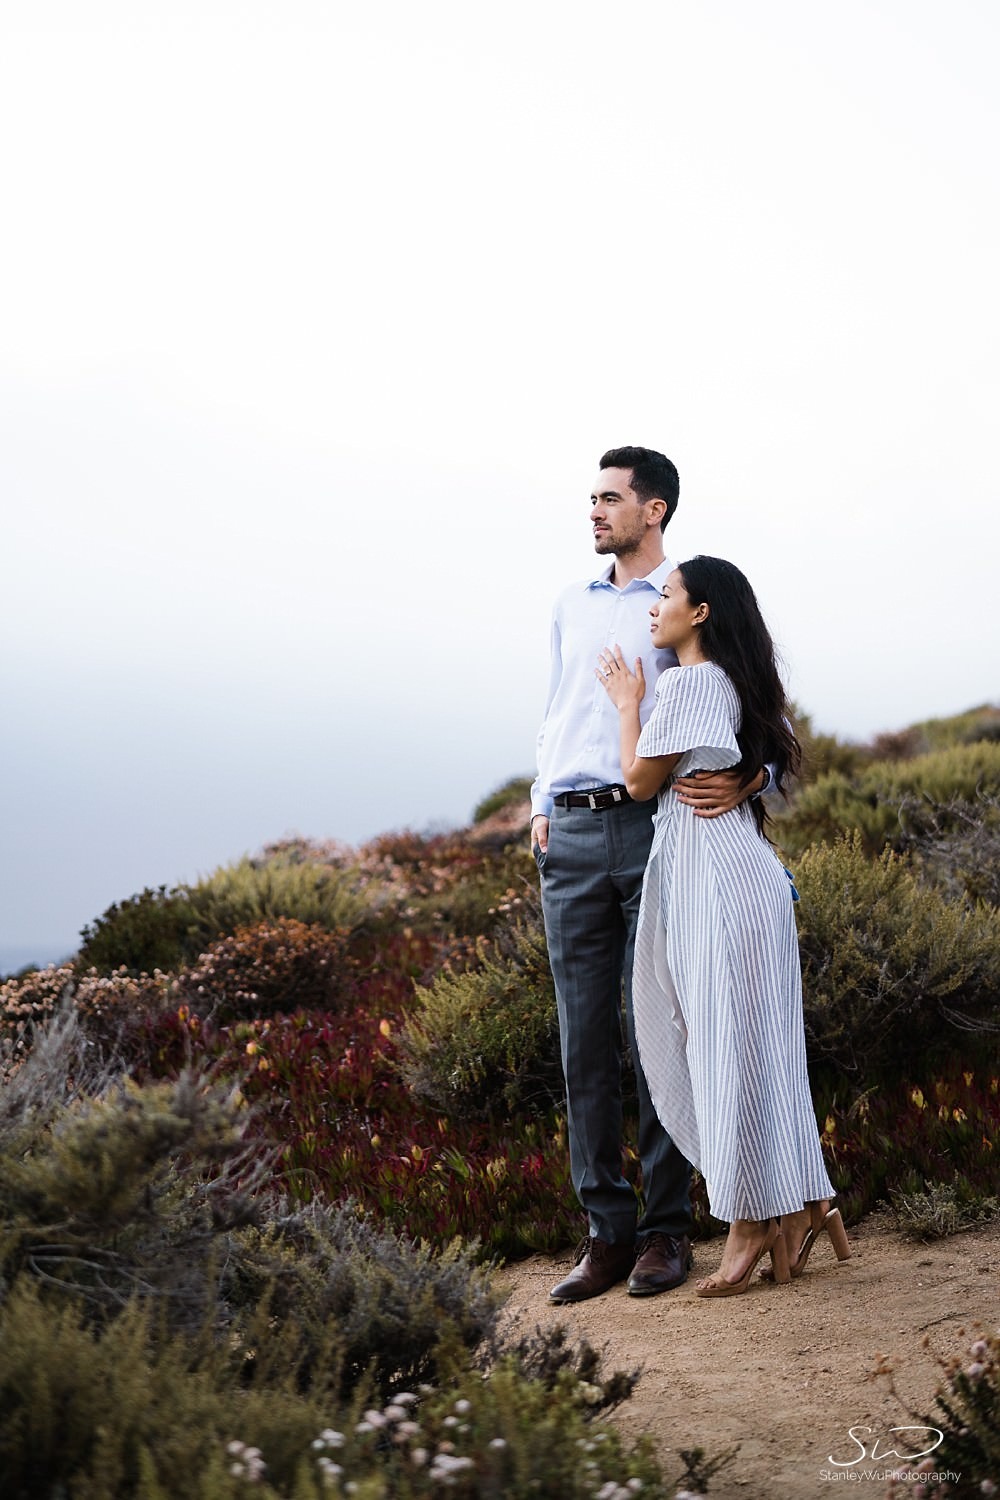 big-sur-travel-adventure-engagement-session_0061.jpg